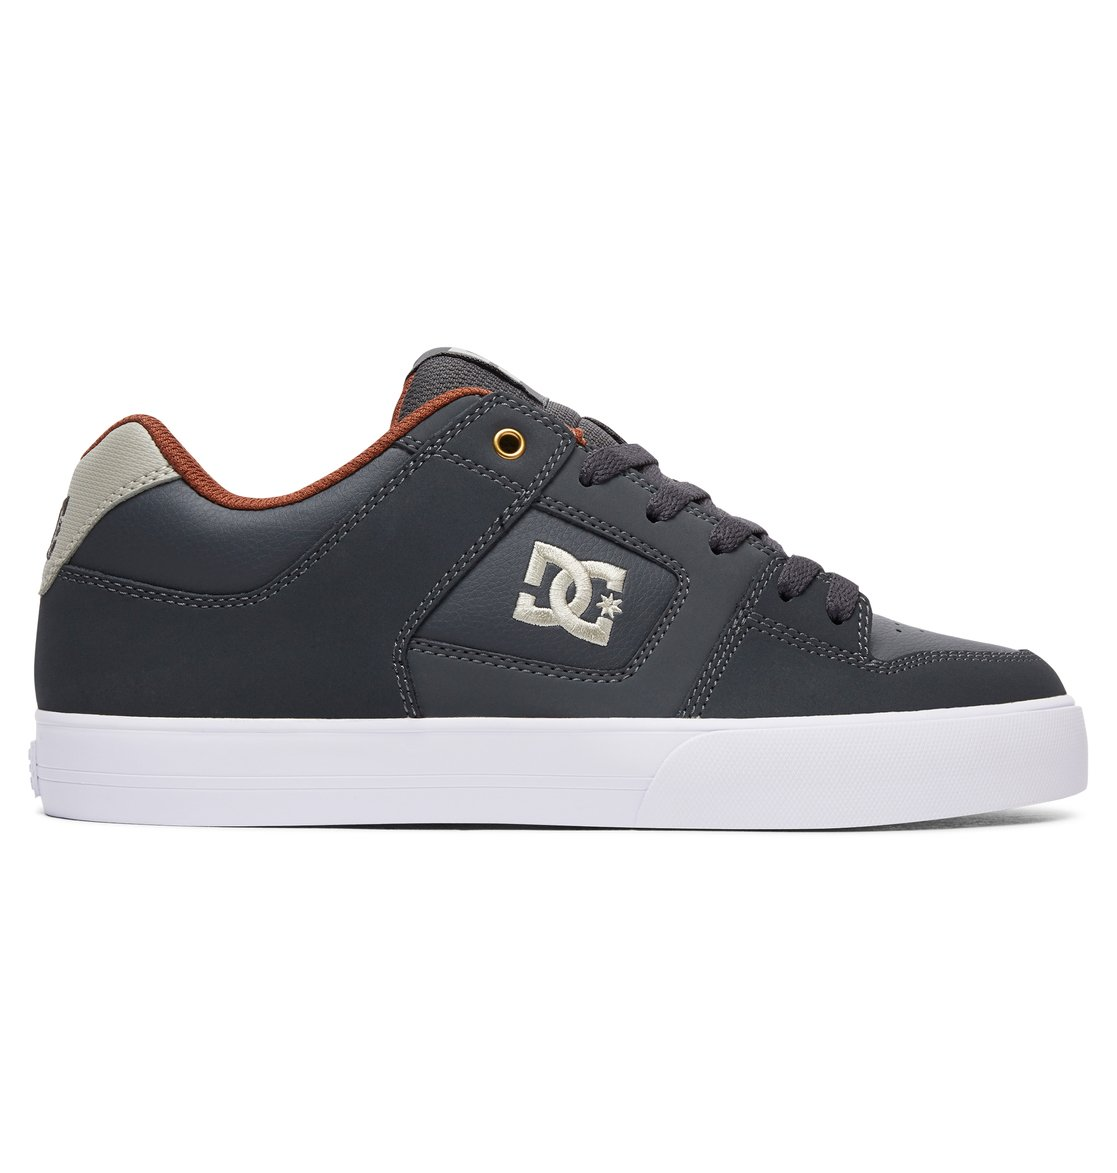 Pure - Chaussures montantes - Marron - DC Shoes oEIeVbsCg